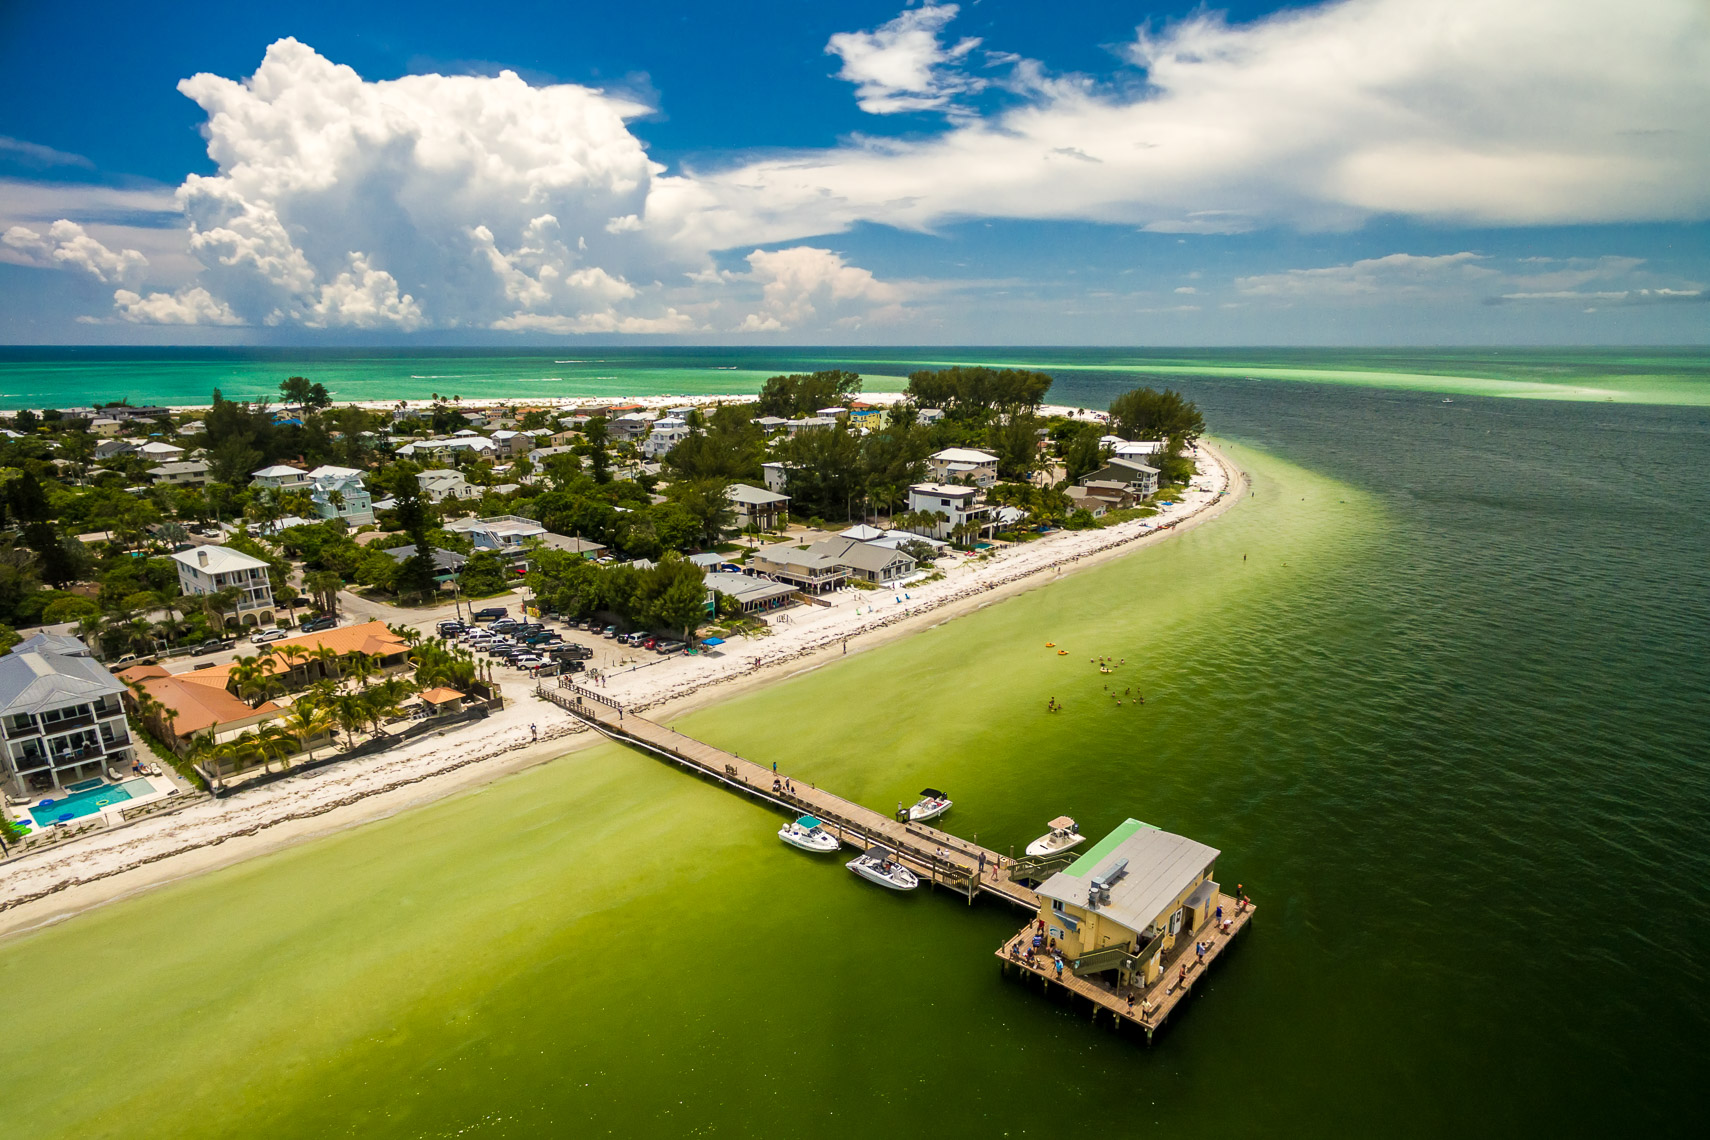 Aerial Drone View of Anna Maria Island and the Rod and Reel Pier